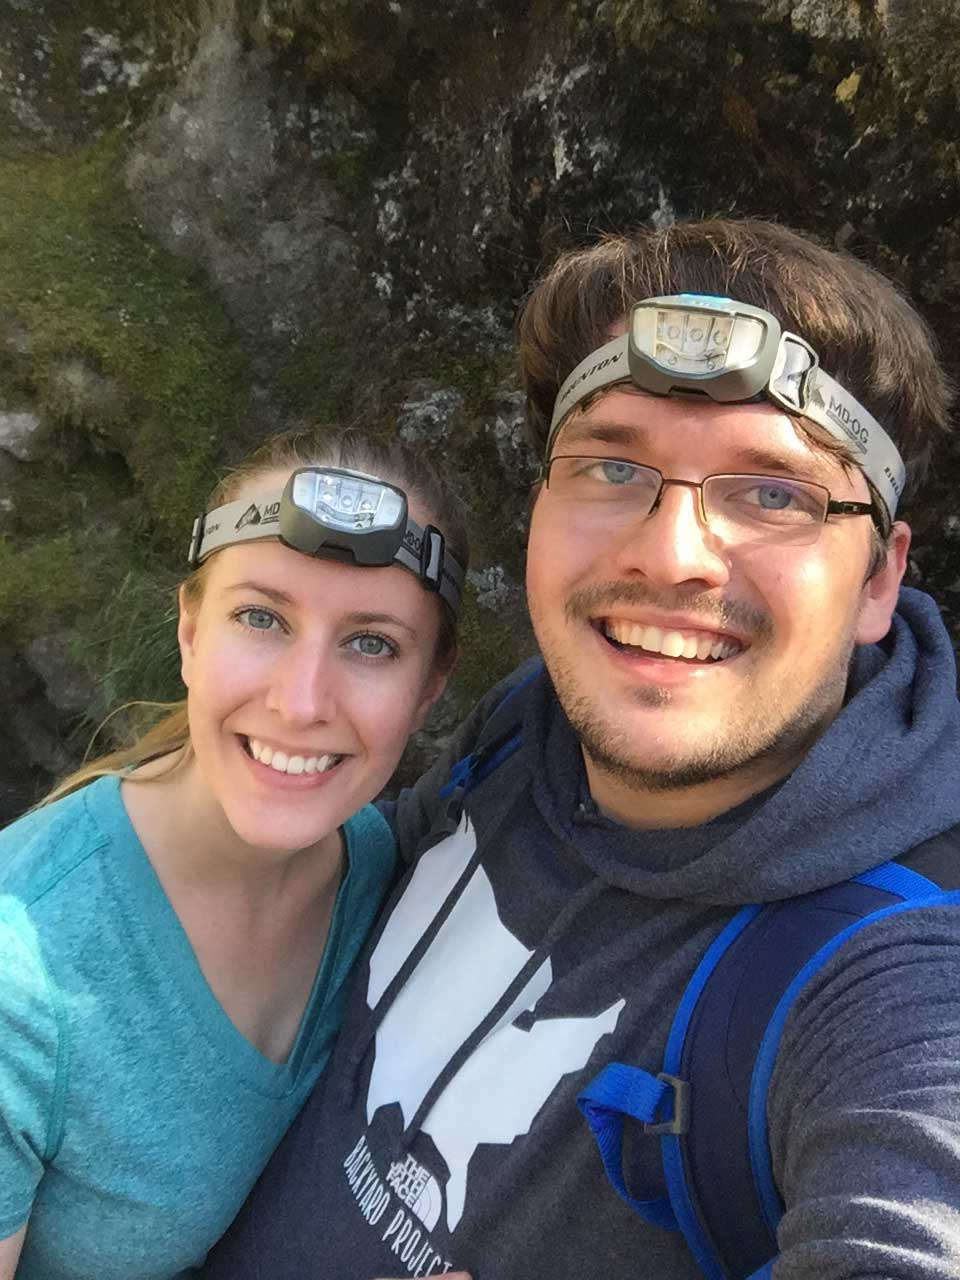 drive-swim-fly-seattle-washington-portland-oregon-vacation-2015-selfietrip-ape-caves-mount-saint-helens-head-lamps-cave-opening